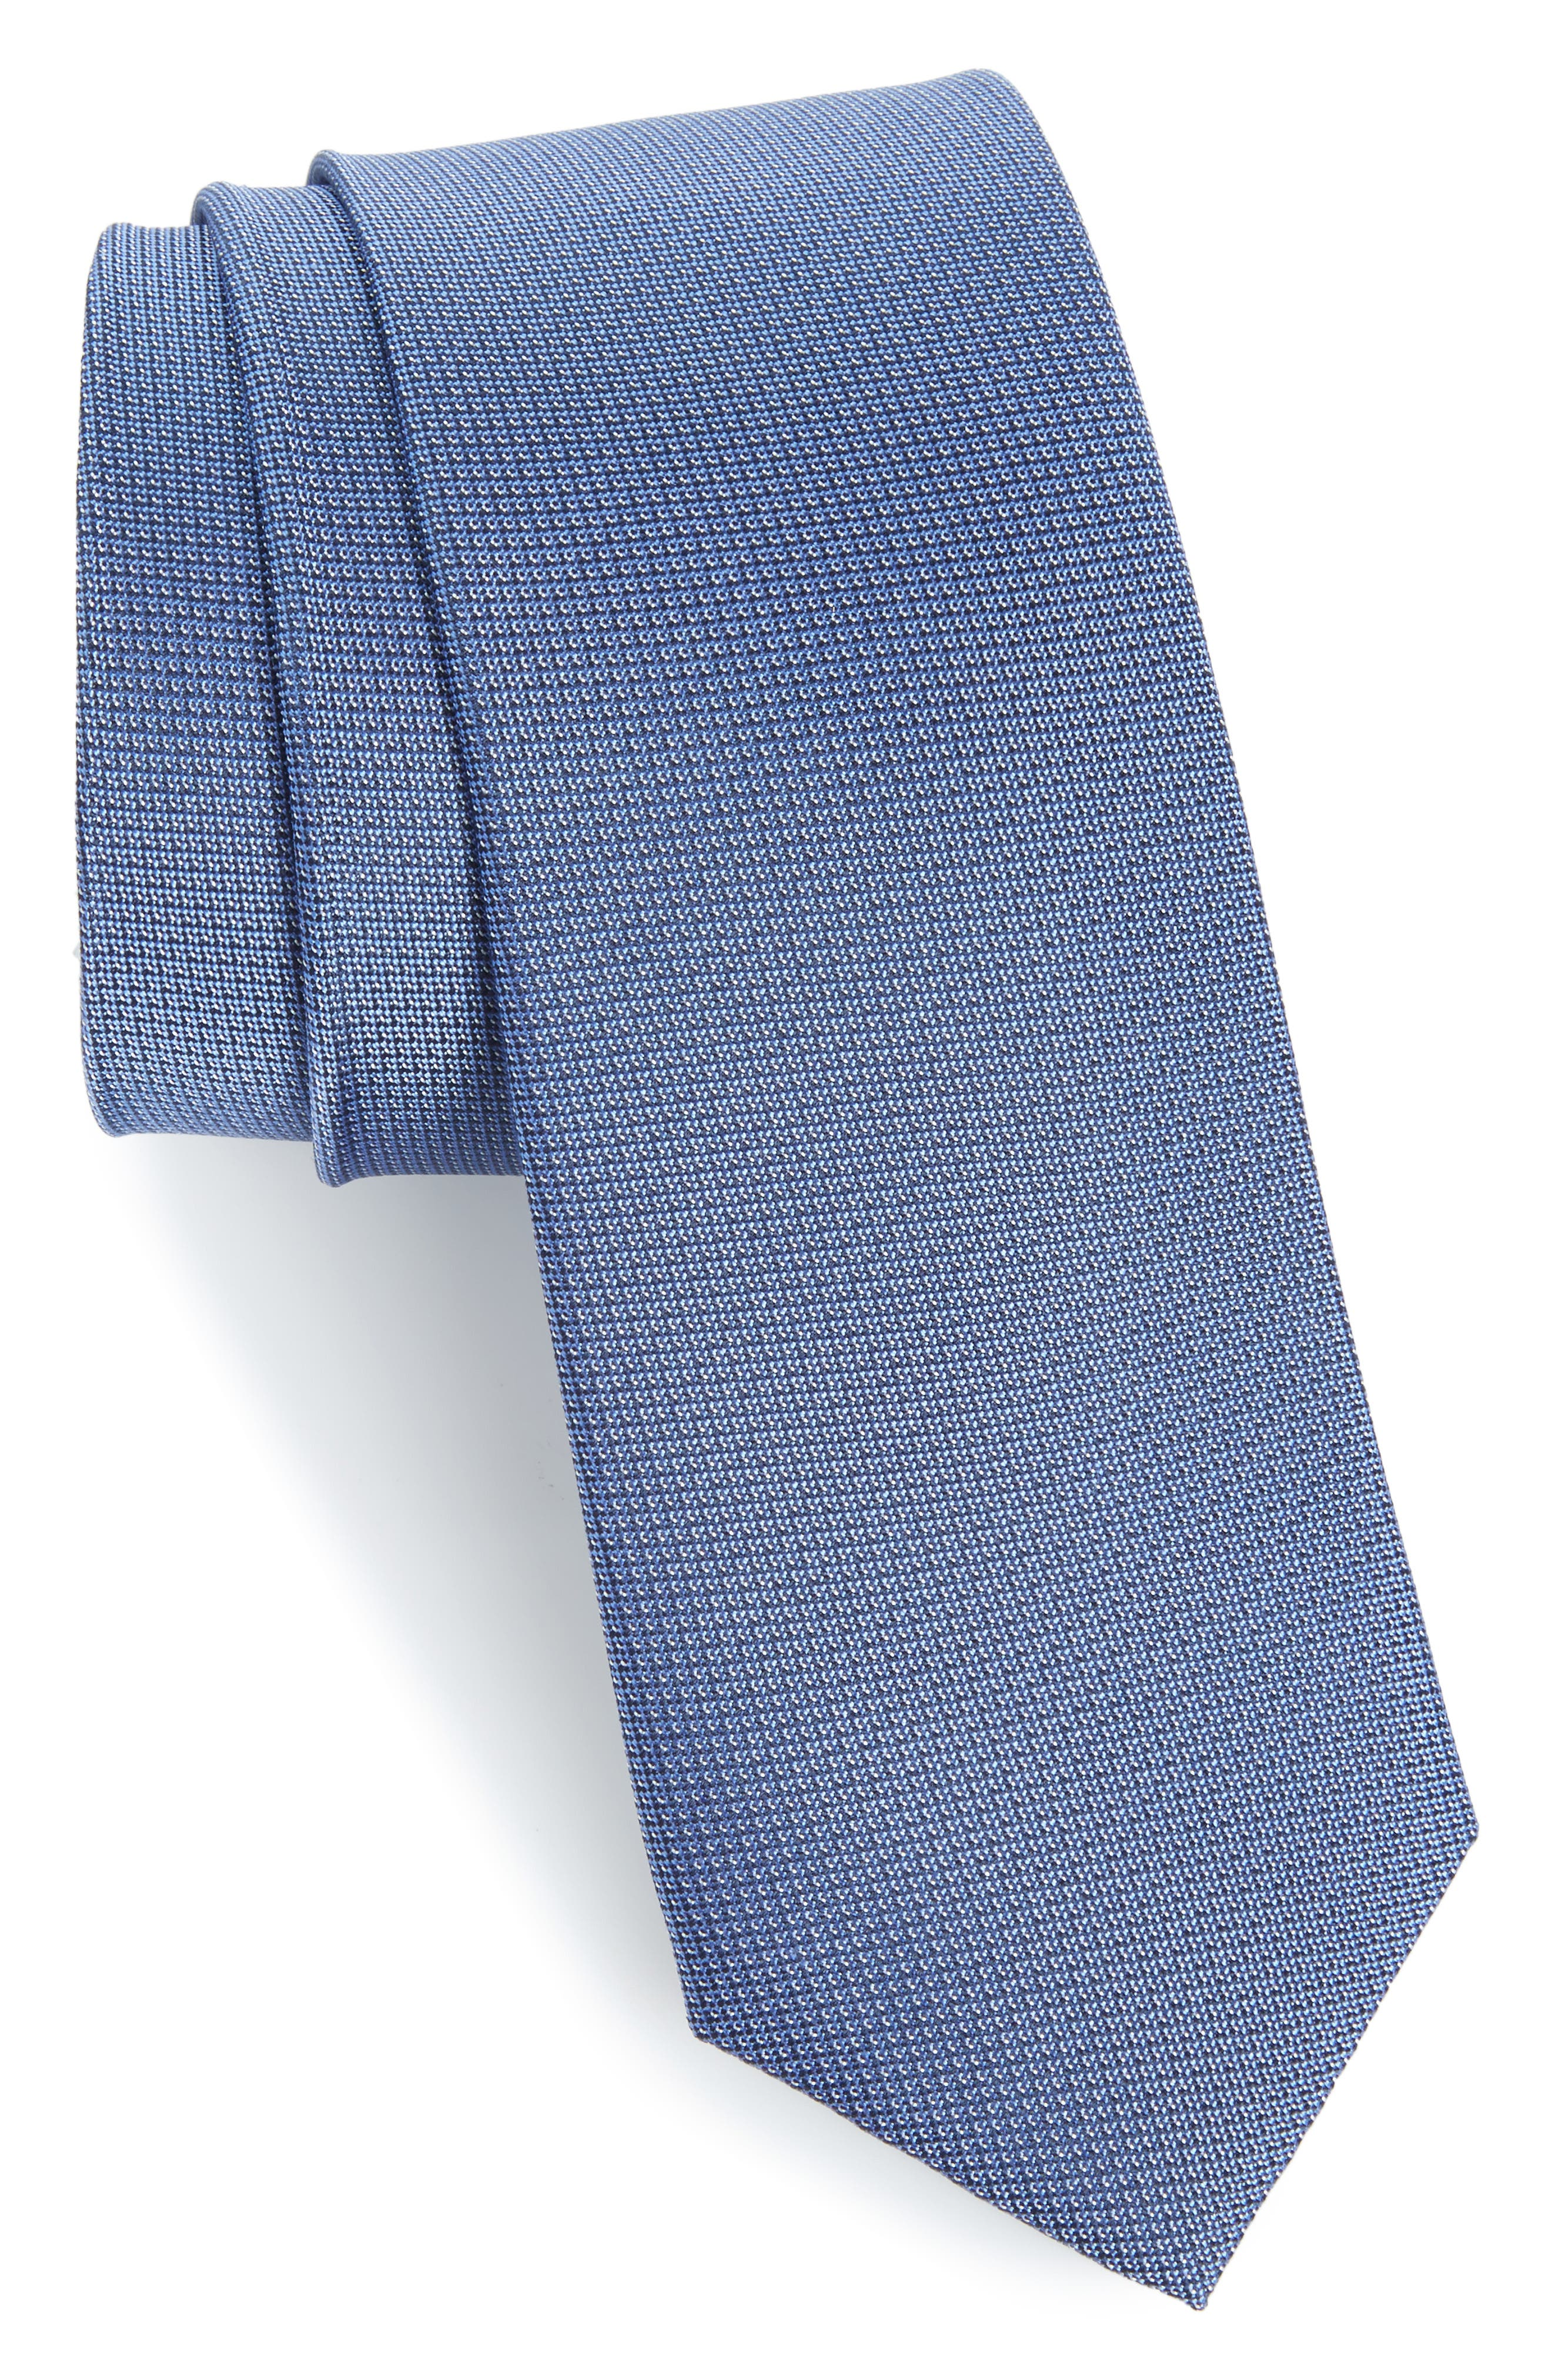 Alternate Image 1 Selected - Calibrate Eternity Unsolid Solid Silk Skinny Tie